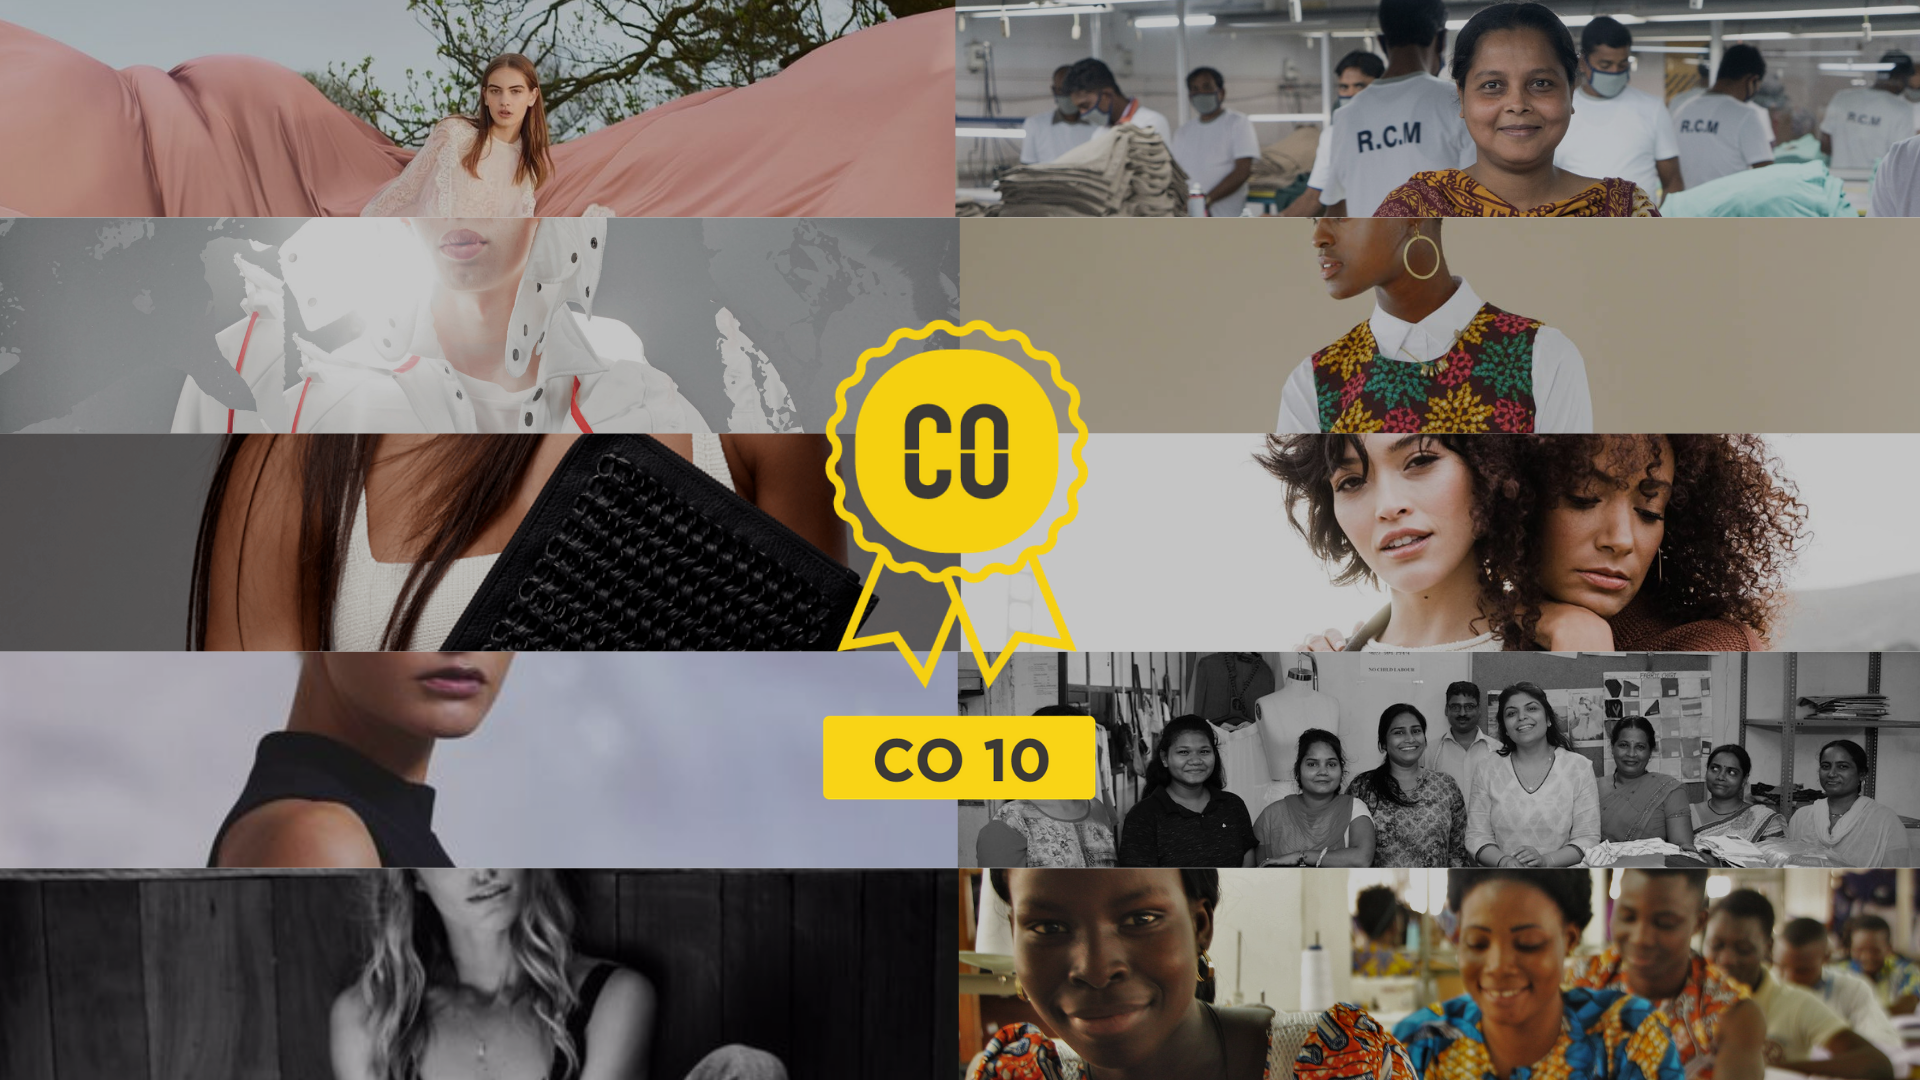 The CO 10 winners were selected from a shortlist of 41 businesses - judged independently by a panel of expert industry leaders. Find out more about the winners below and view the shortlists of  brands  and  suppliers  for more inspiration.